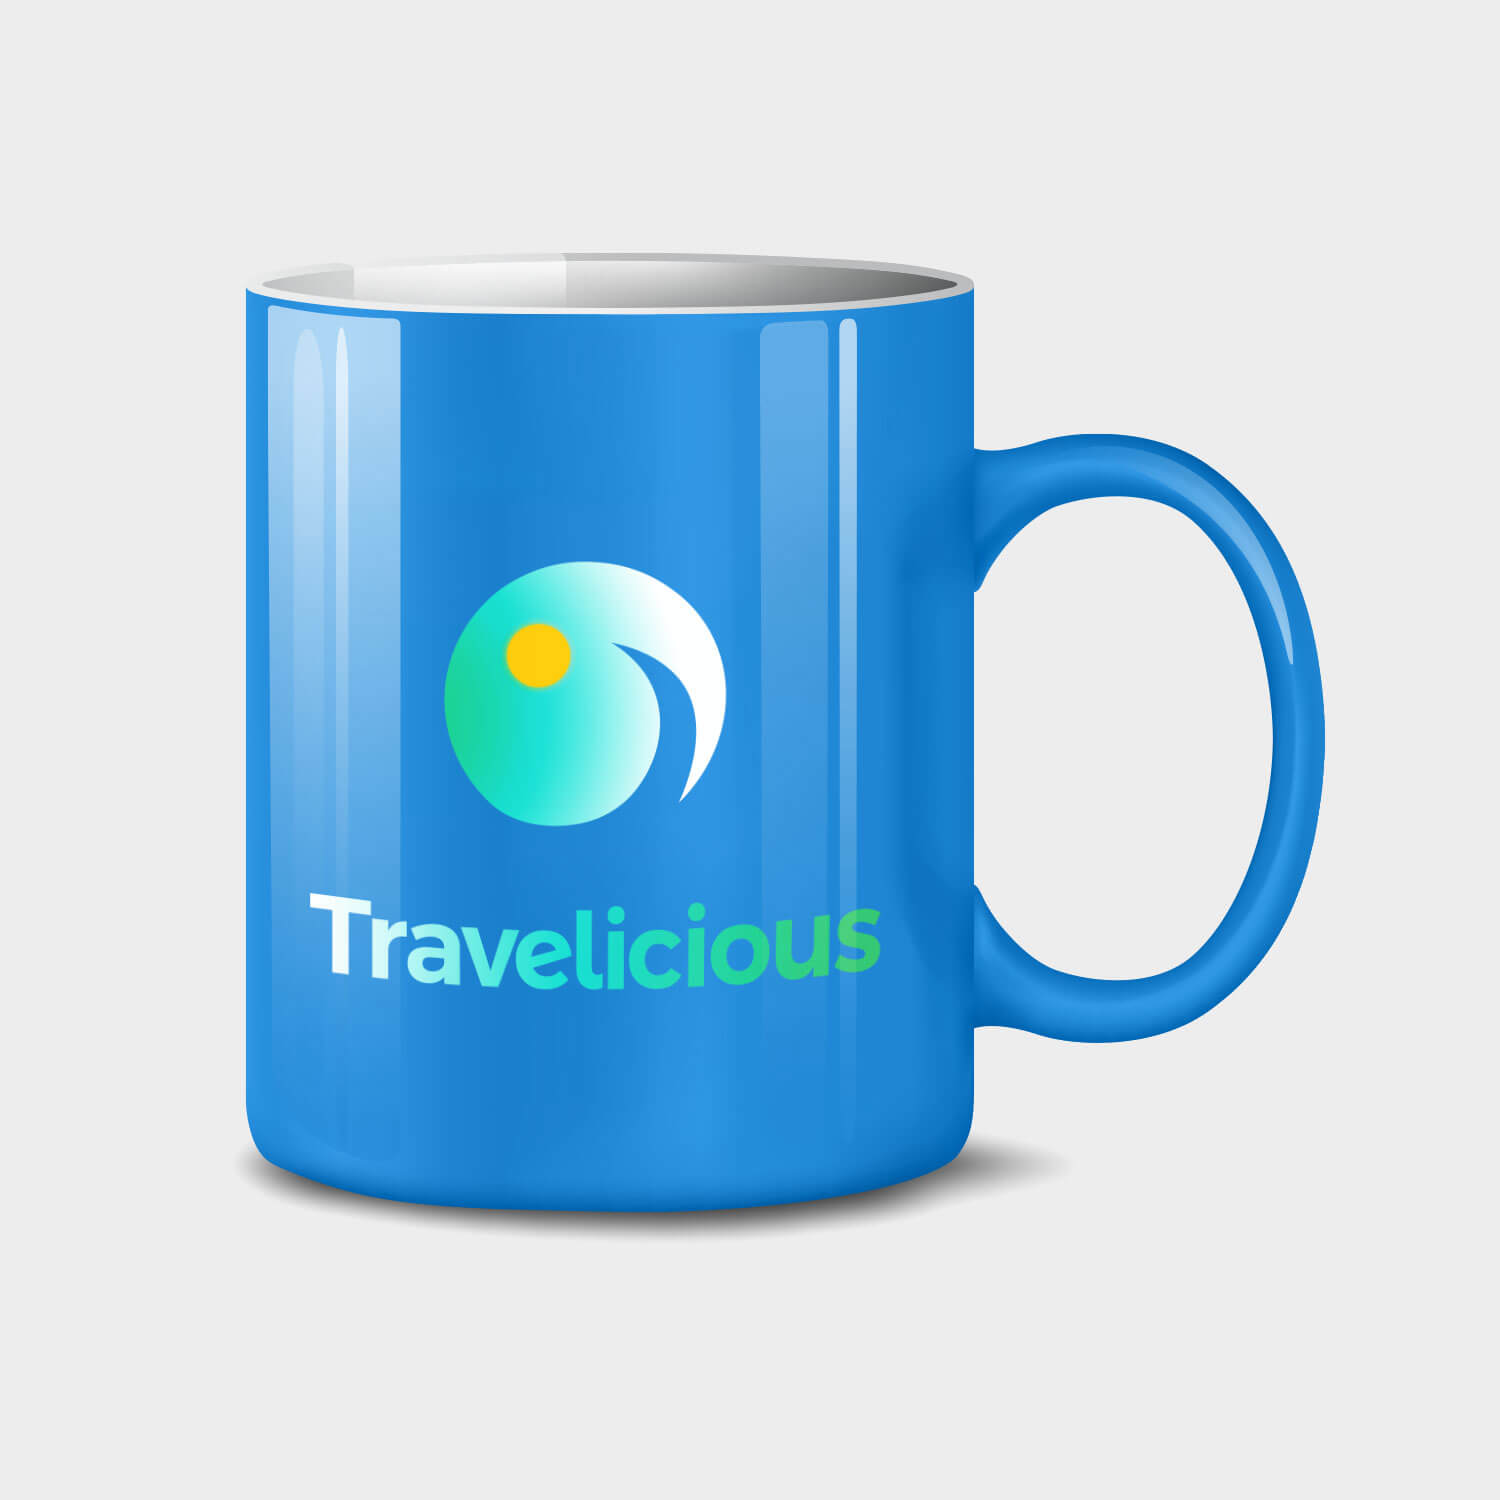 http://travelicious.bold-themes.com/main-demo/wp-content/uploads/sites/2/2018/09/mug-09.jpg